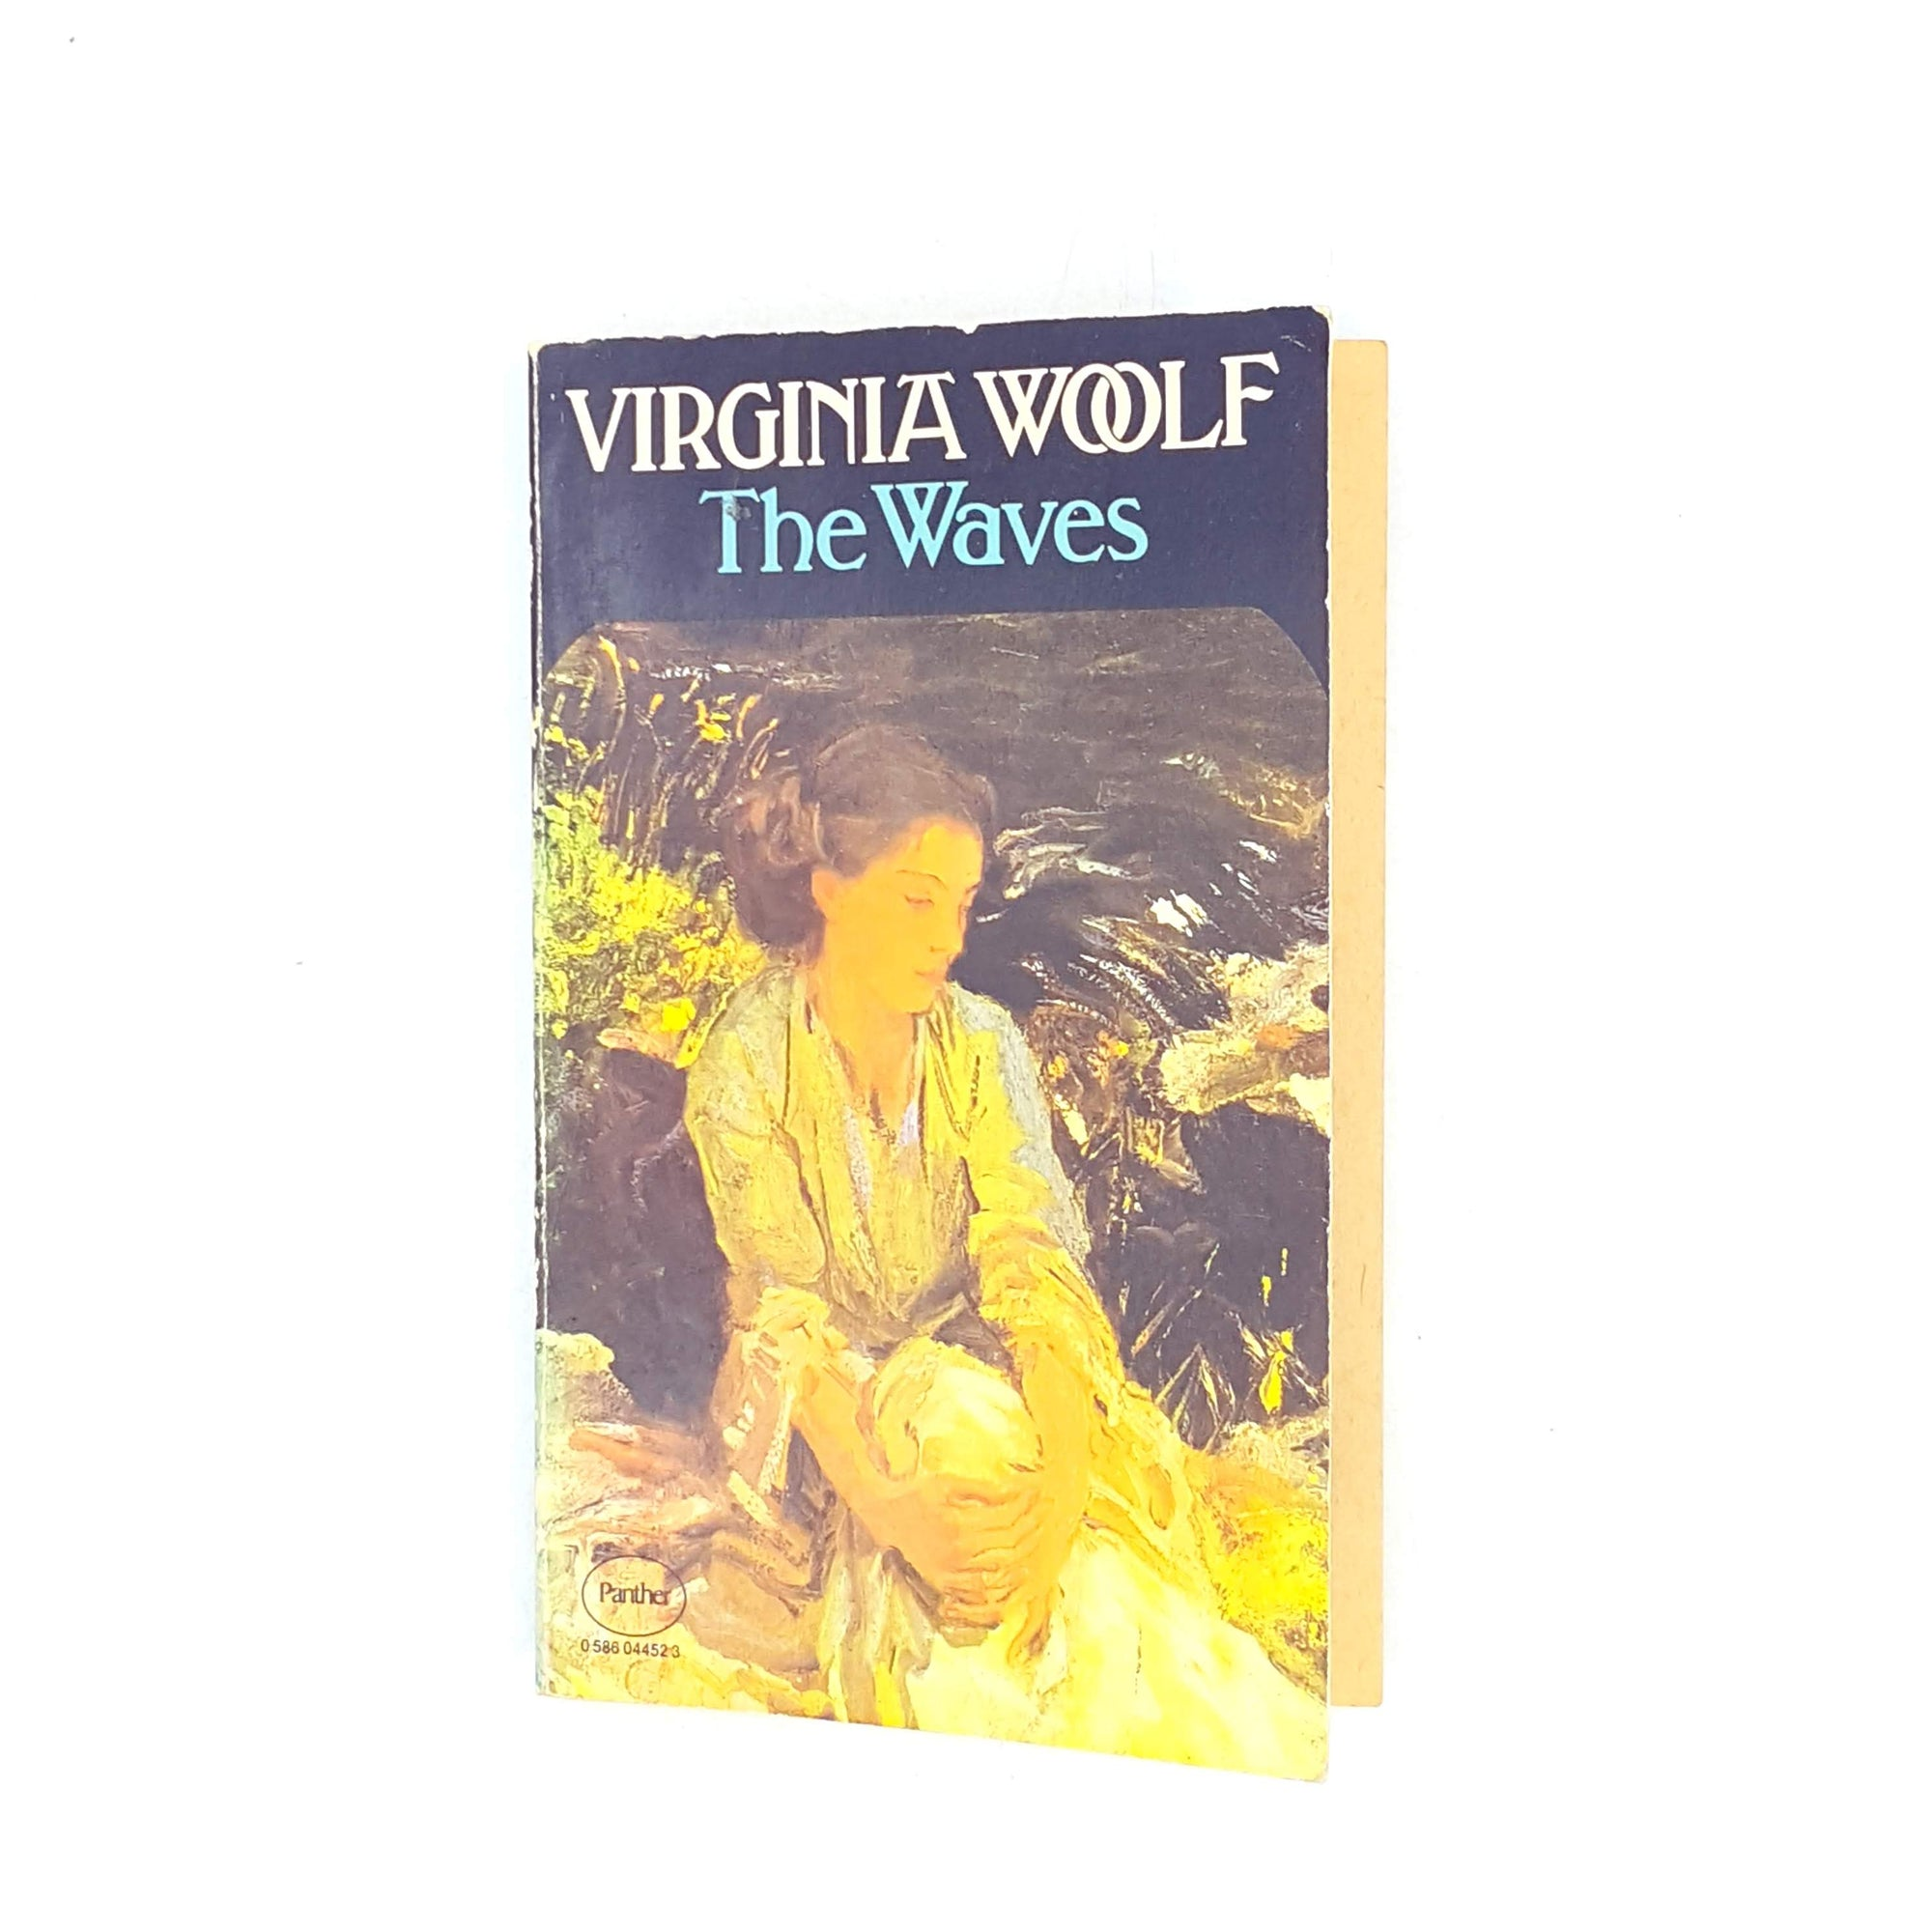 antique-decorative-thrift-the-waves-classics-country-house-library-books-virginia-woolf-vintage-panther-black-old-1979-